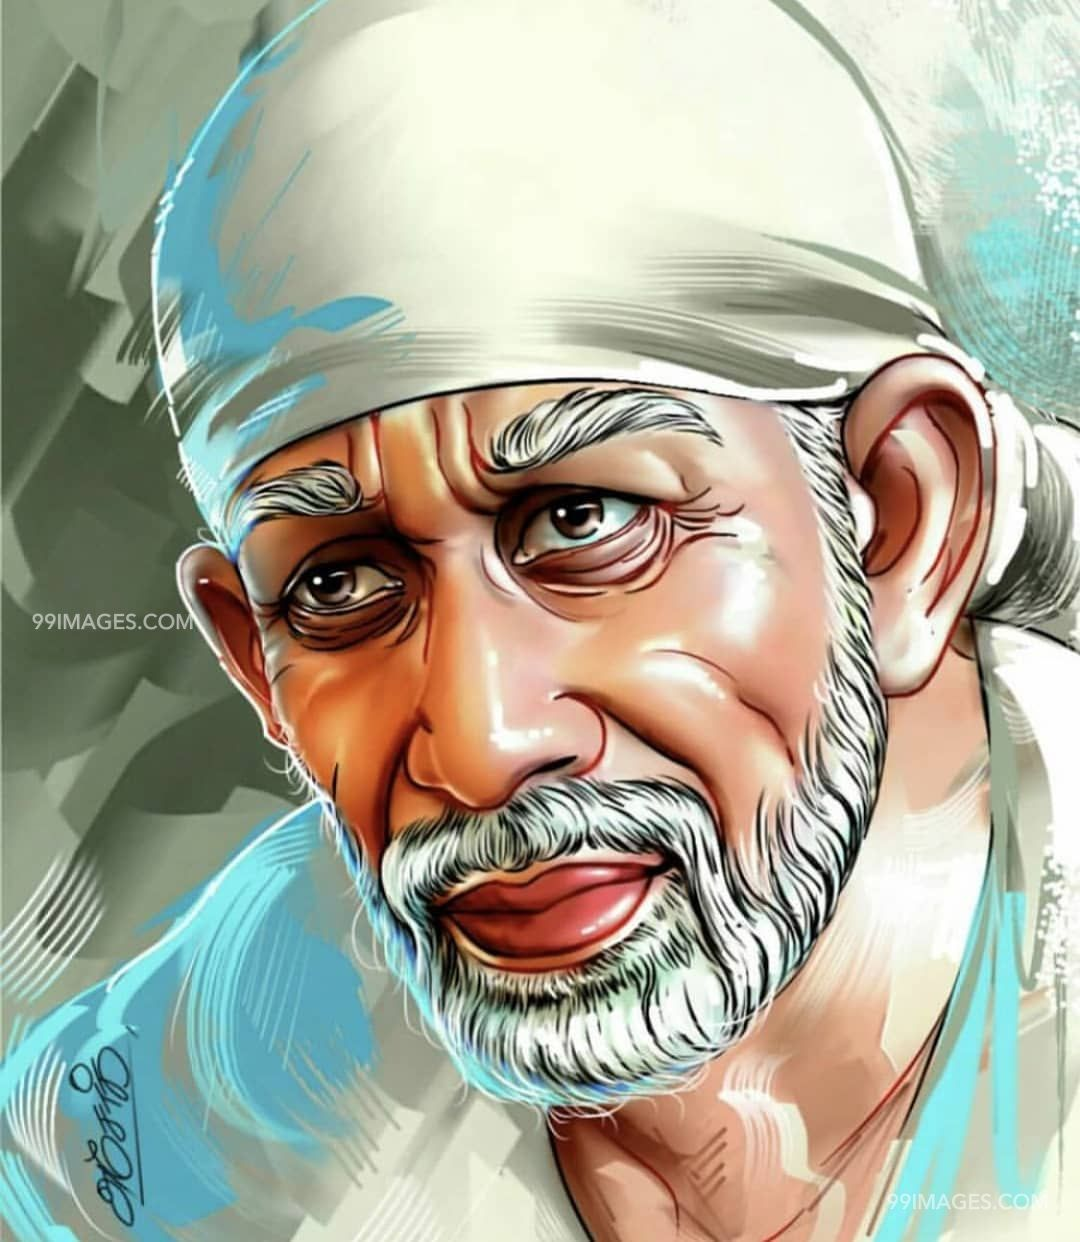 30 Sai Baba Hd Images For Android Iphone Mobile Hd Wallpapers 1080p 1080x1242 2020